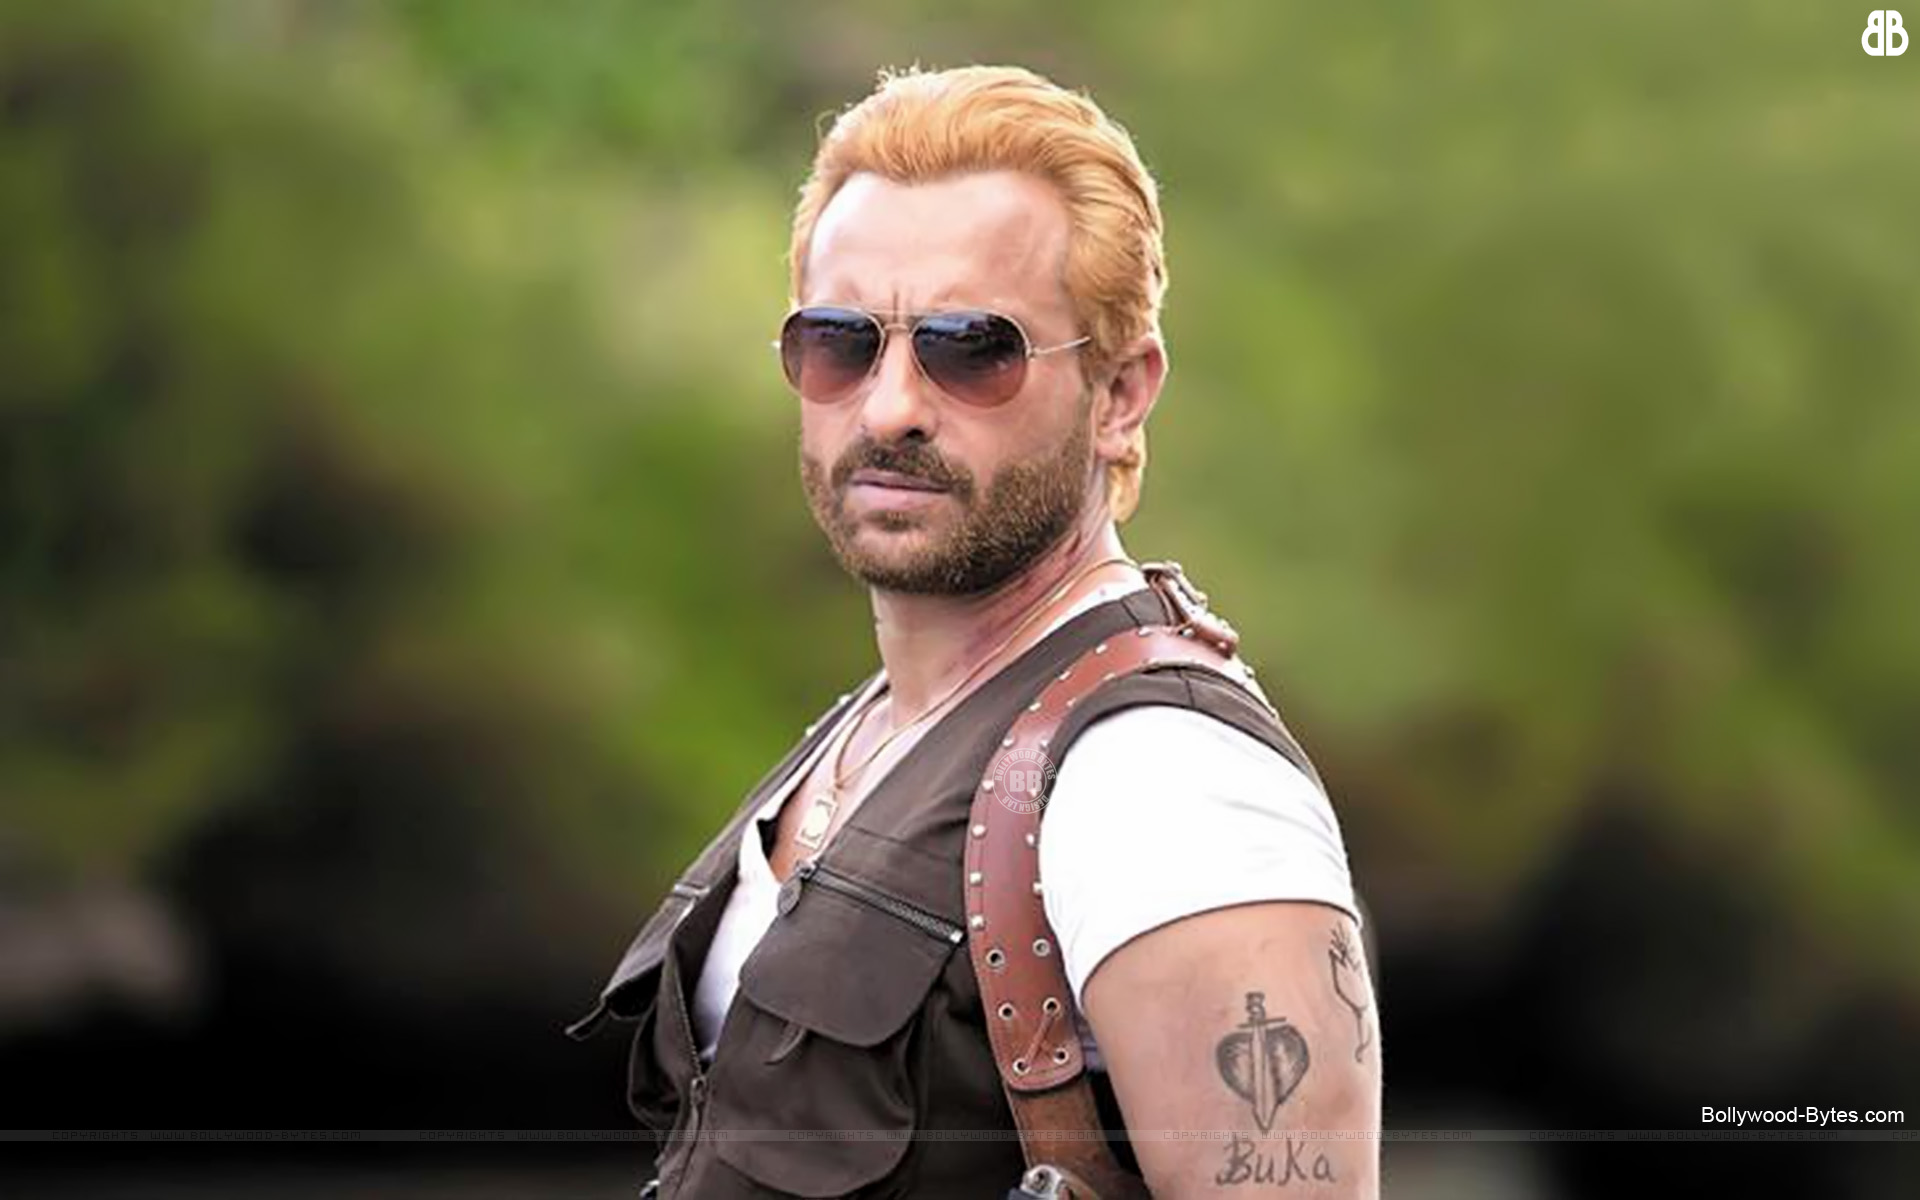 http://4.bp.blogspot.com/-9GJ49HIt0e8/UU4G-SpSbOI/AAAAAAAAcx0/ucP1tAxqBAg/s1920/Go-Goa-Gone-Hot-Saif-Ali-Khan-HD-Wallpaper-02.jpg